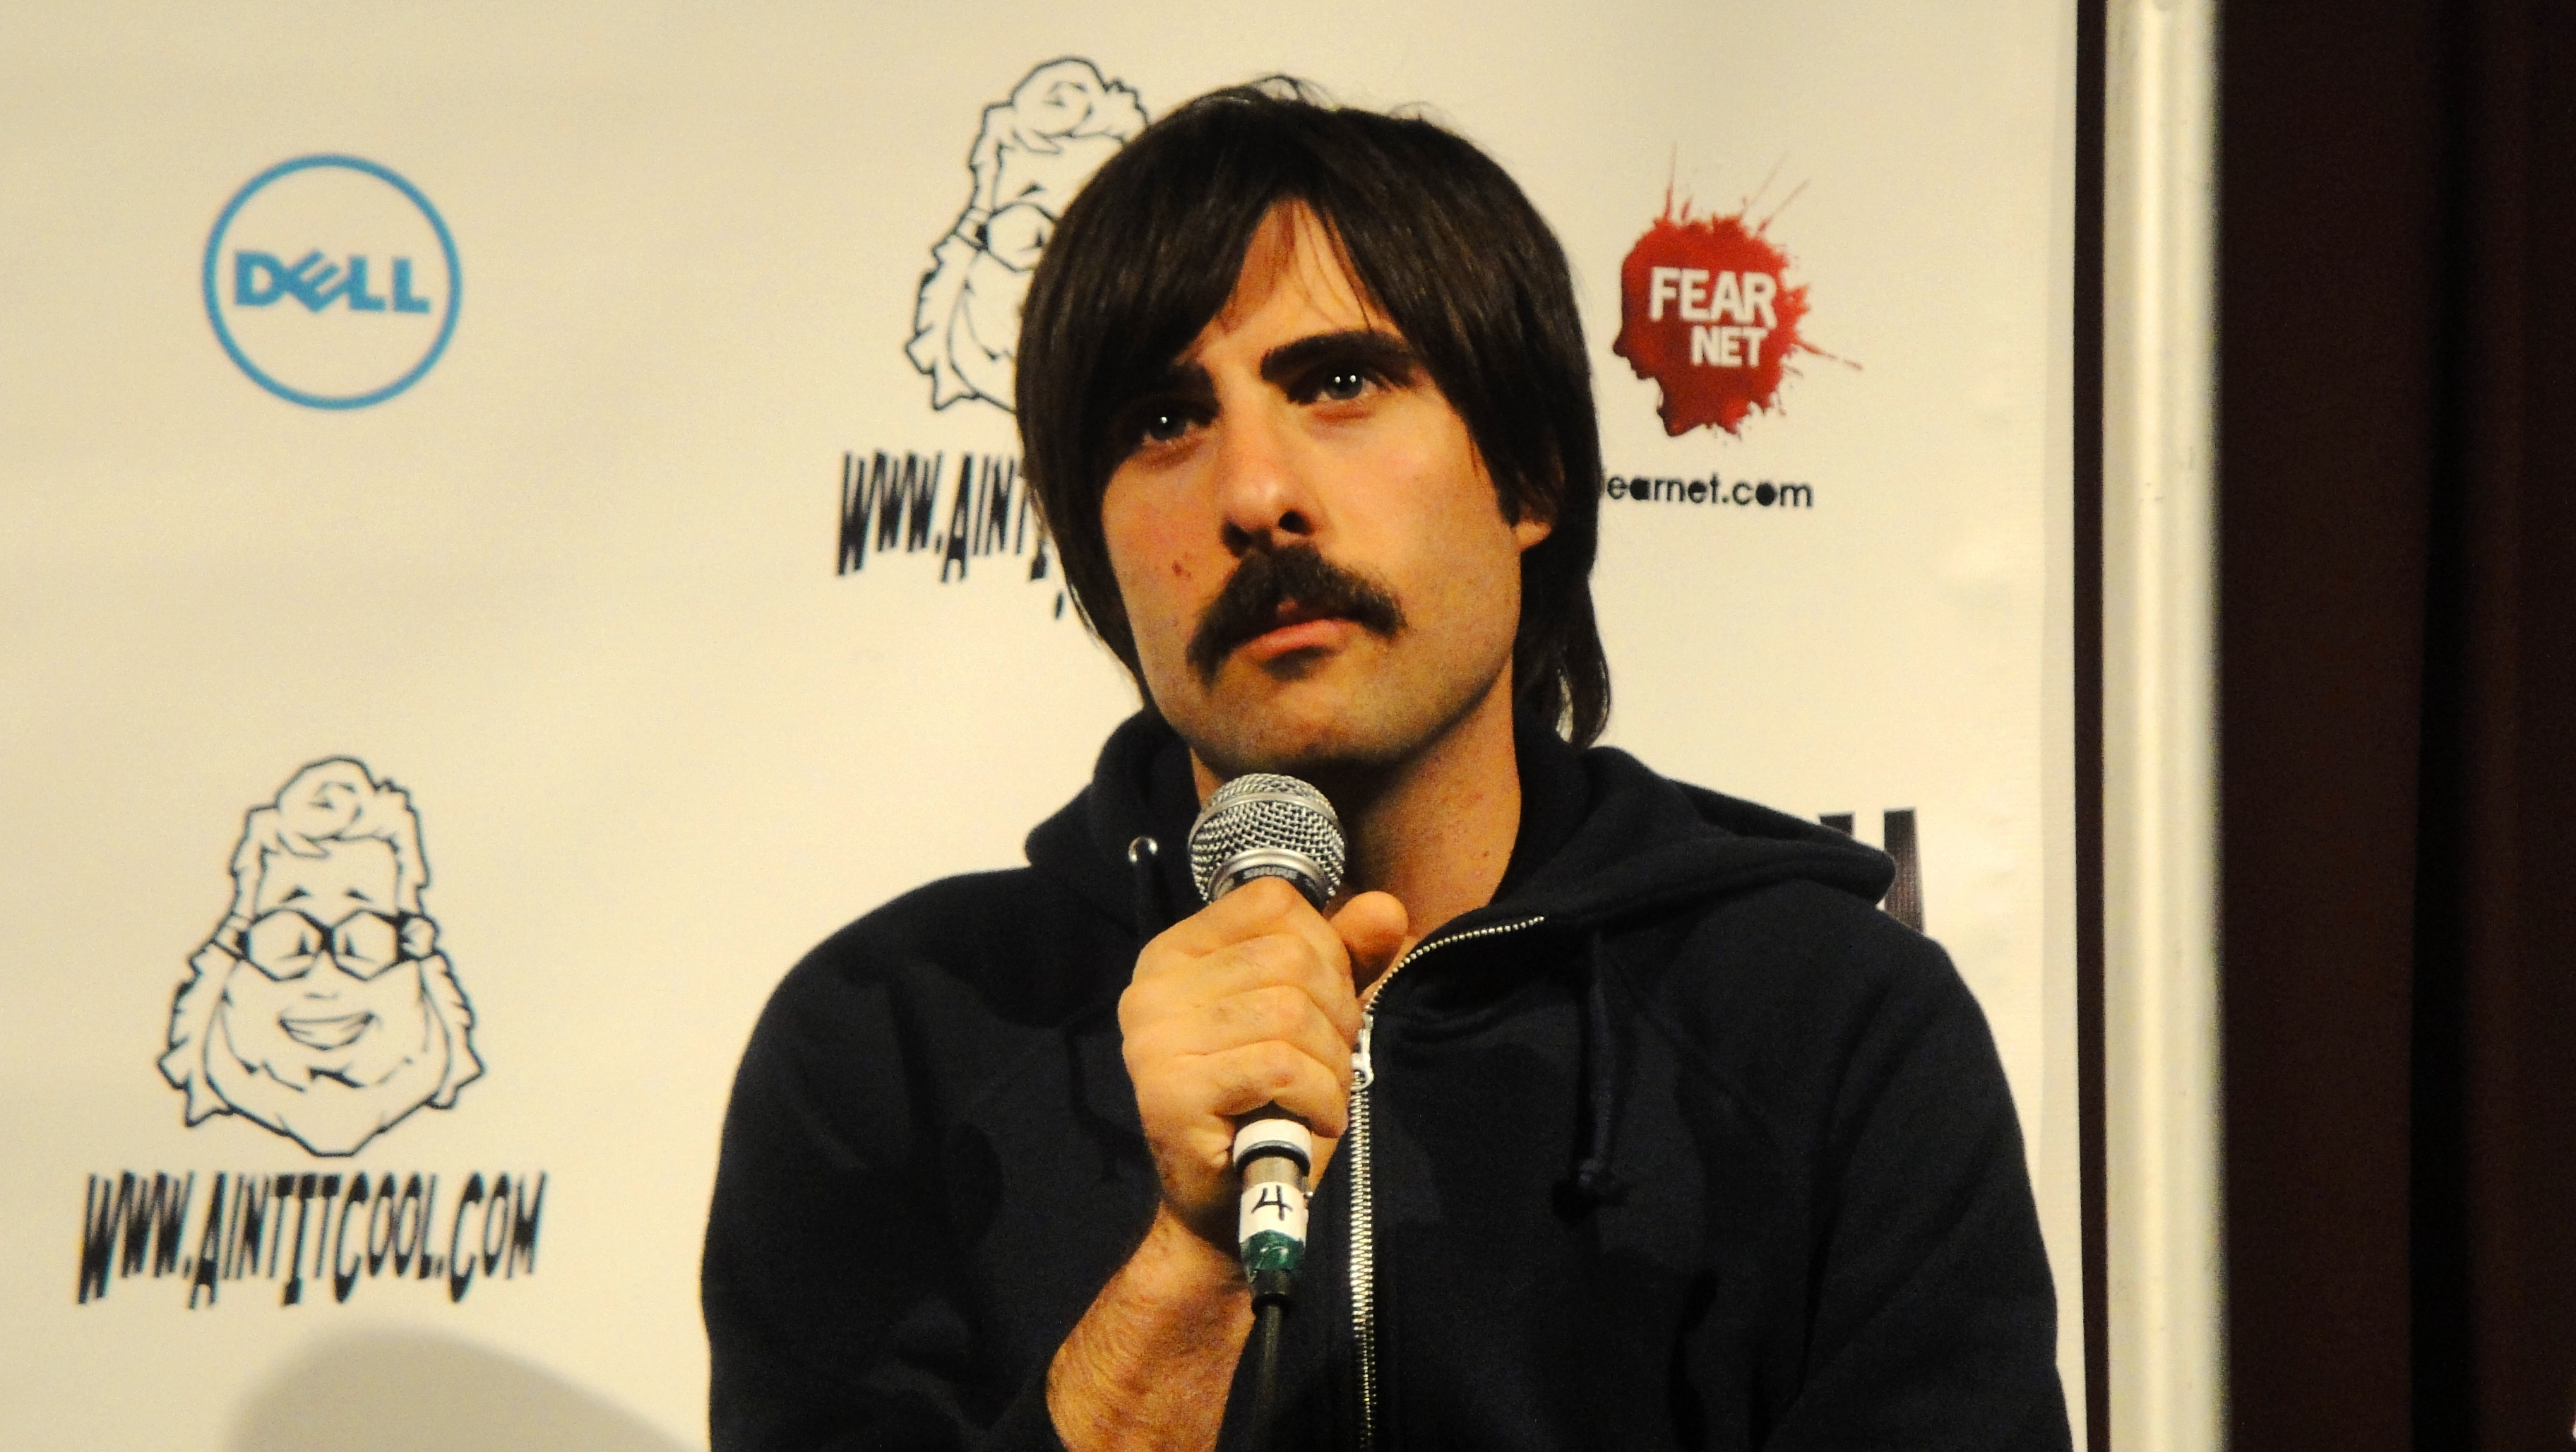 Jason Schwartzman Computer Wallpaper